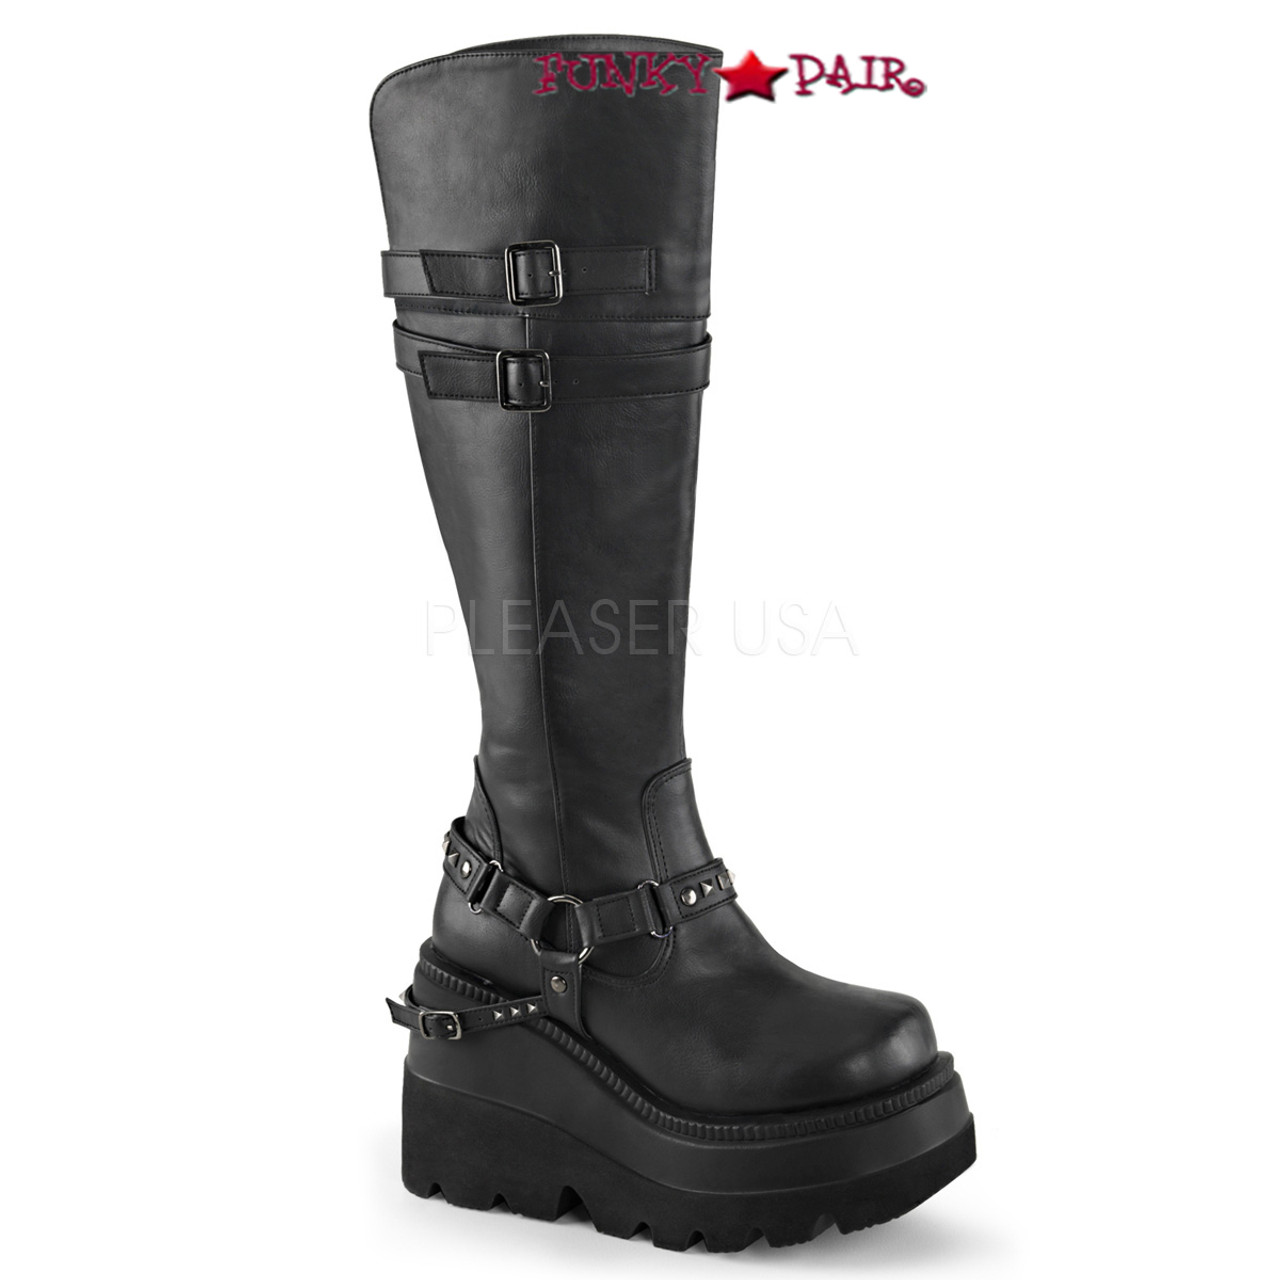 f388401150bec Shaker-101, 4.5 inch platform knee high boots with buckles